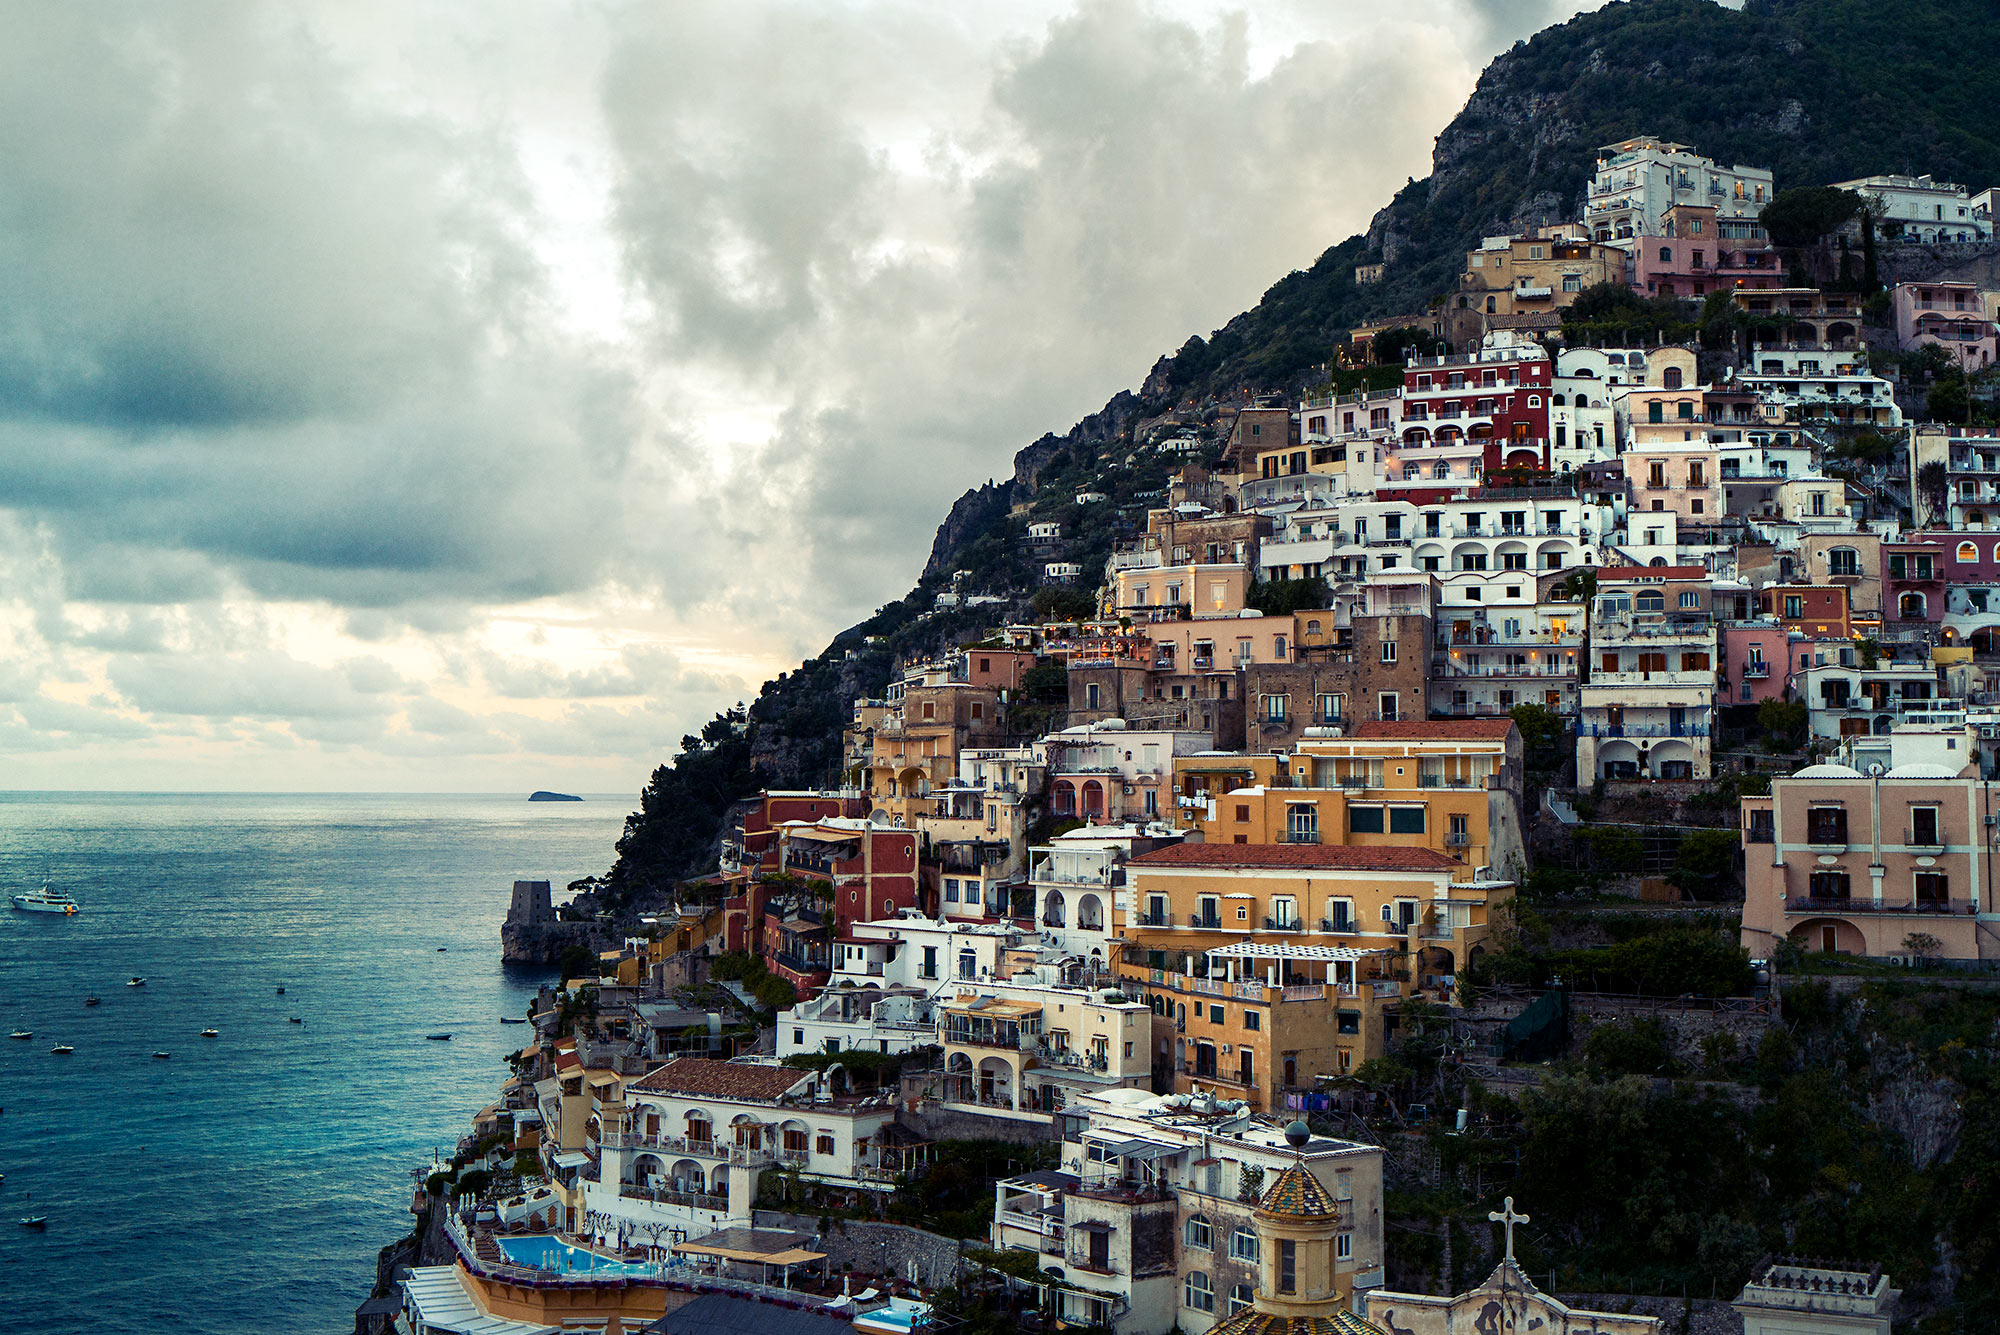 Good Boy Wolf Photographer, filmic landscape, Positano Italy, buildings on cliff edges looking out to sea